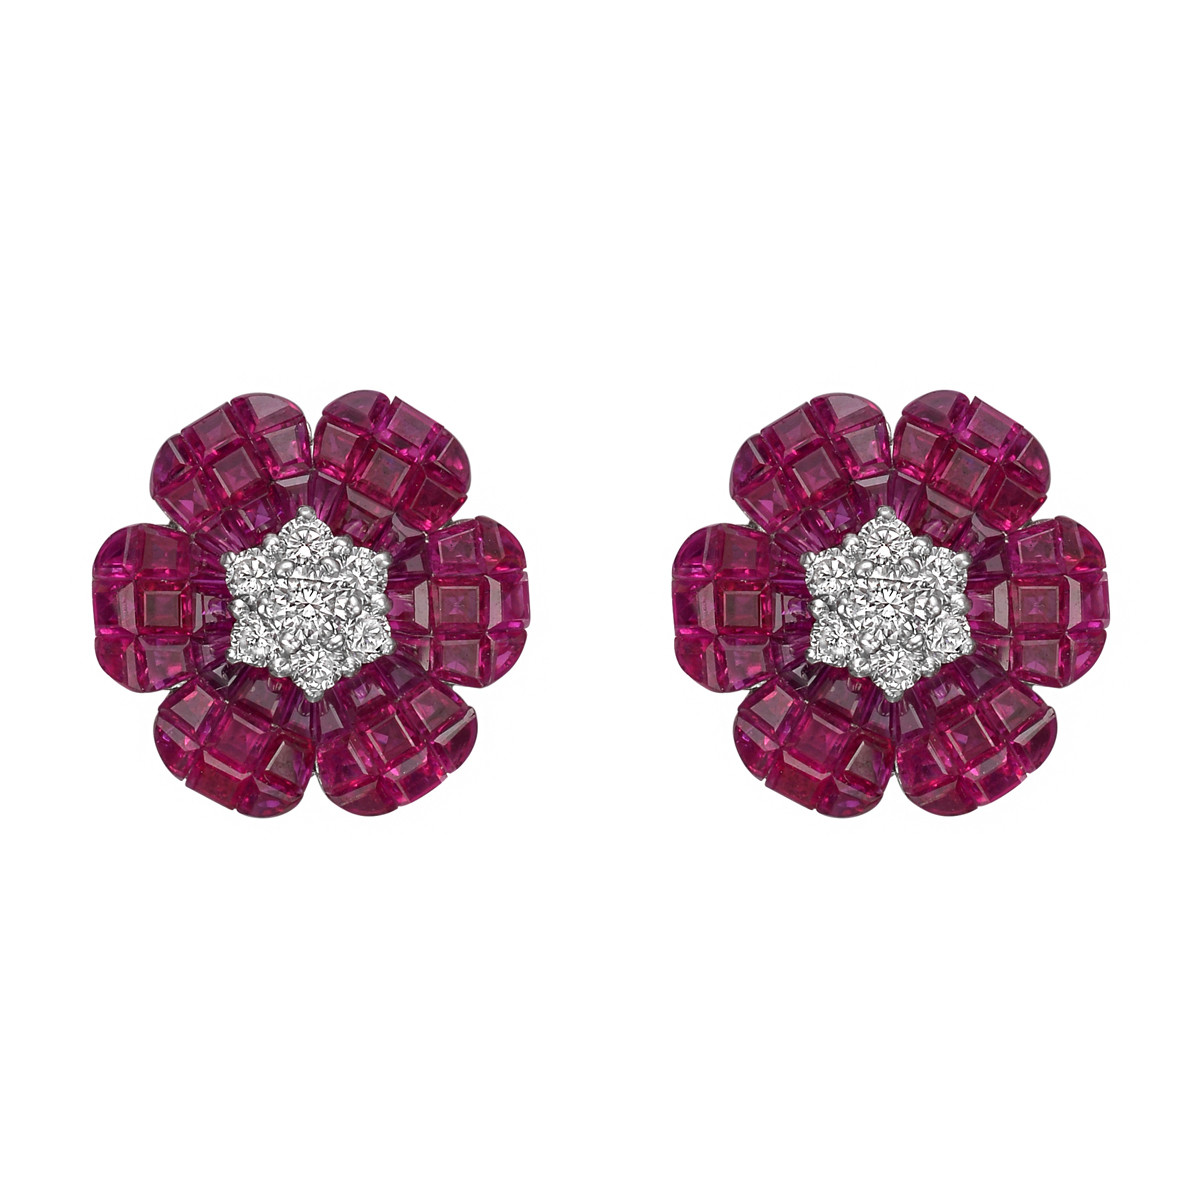 Invisibly-Set Ruby & Diamond Flower Earrings